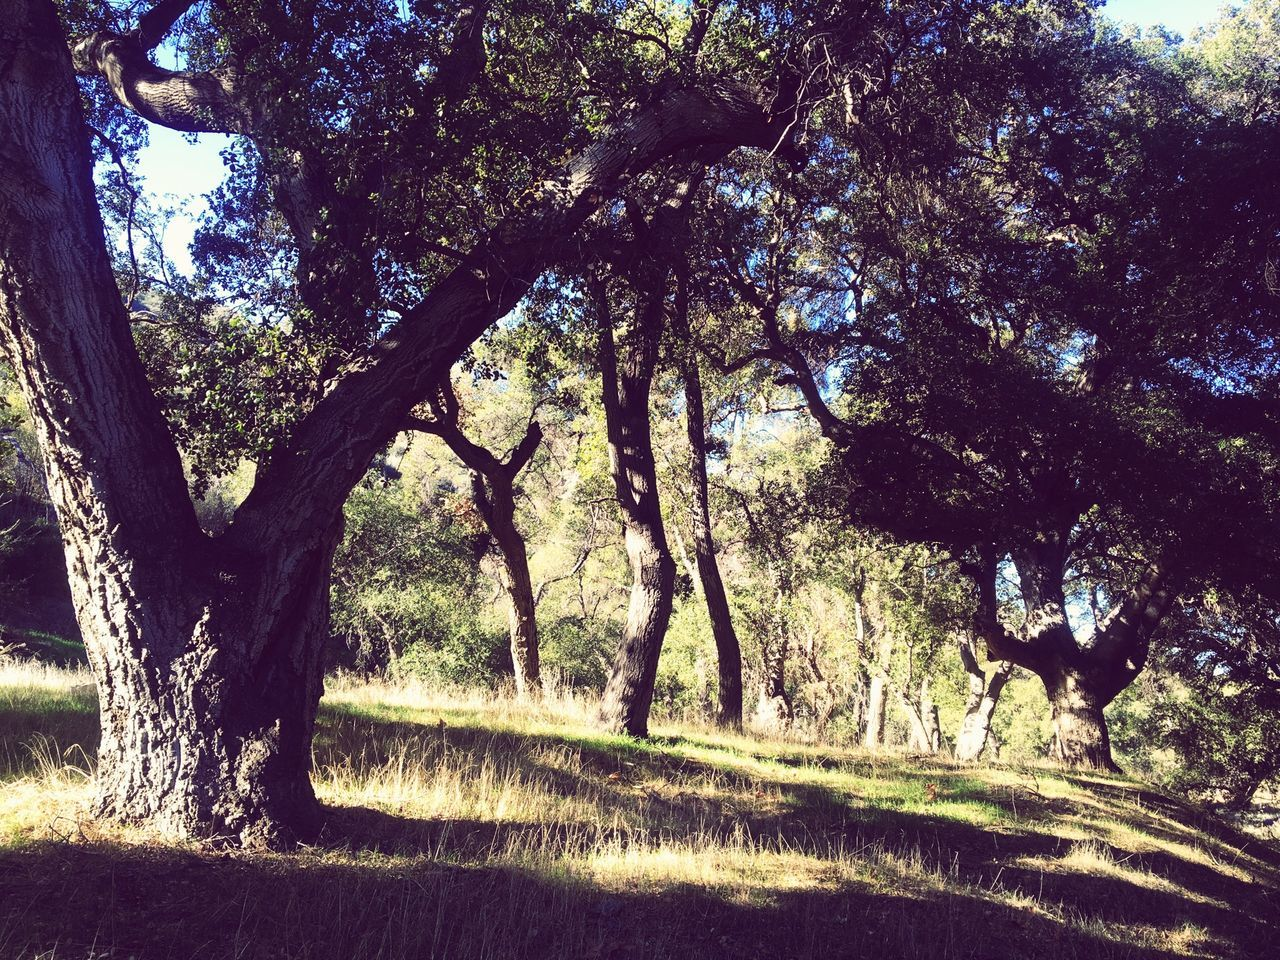 Oak woodlands. Hiking SoCal Hiking IPhoneography Nature Nature_collection Nature Photography Oak Trees Oak Tree Hiking Trail Hiking❤ Hiking Adventures Trail Landscapes With WhiteWall Here Belongs To Me